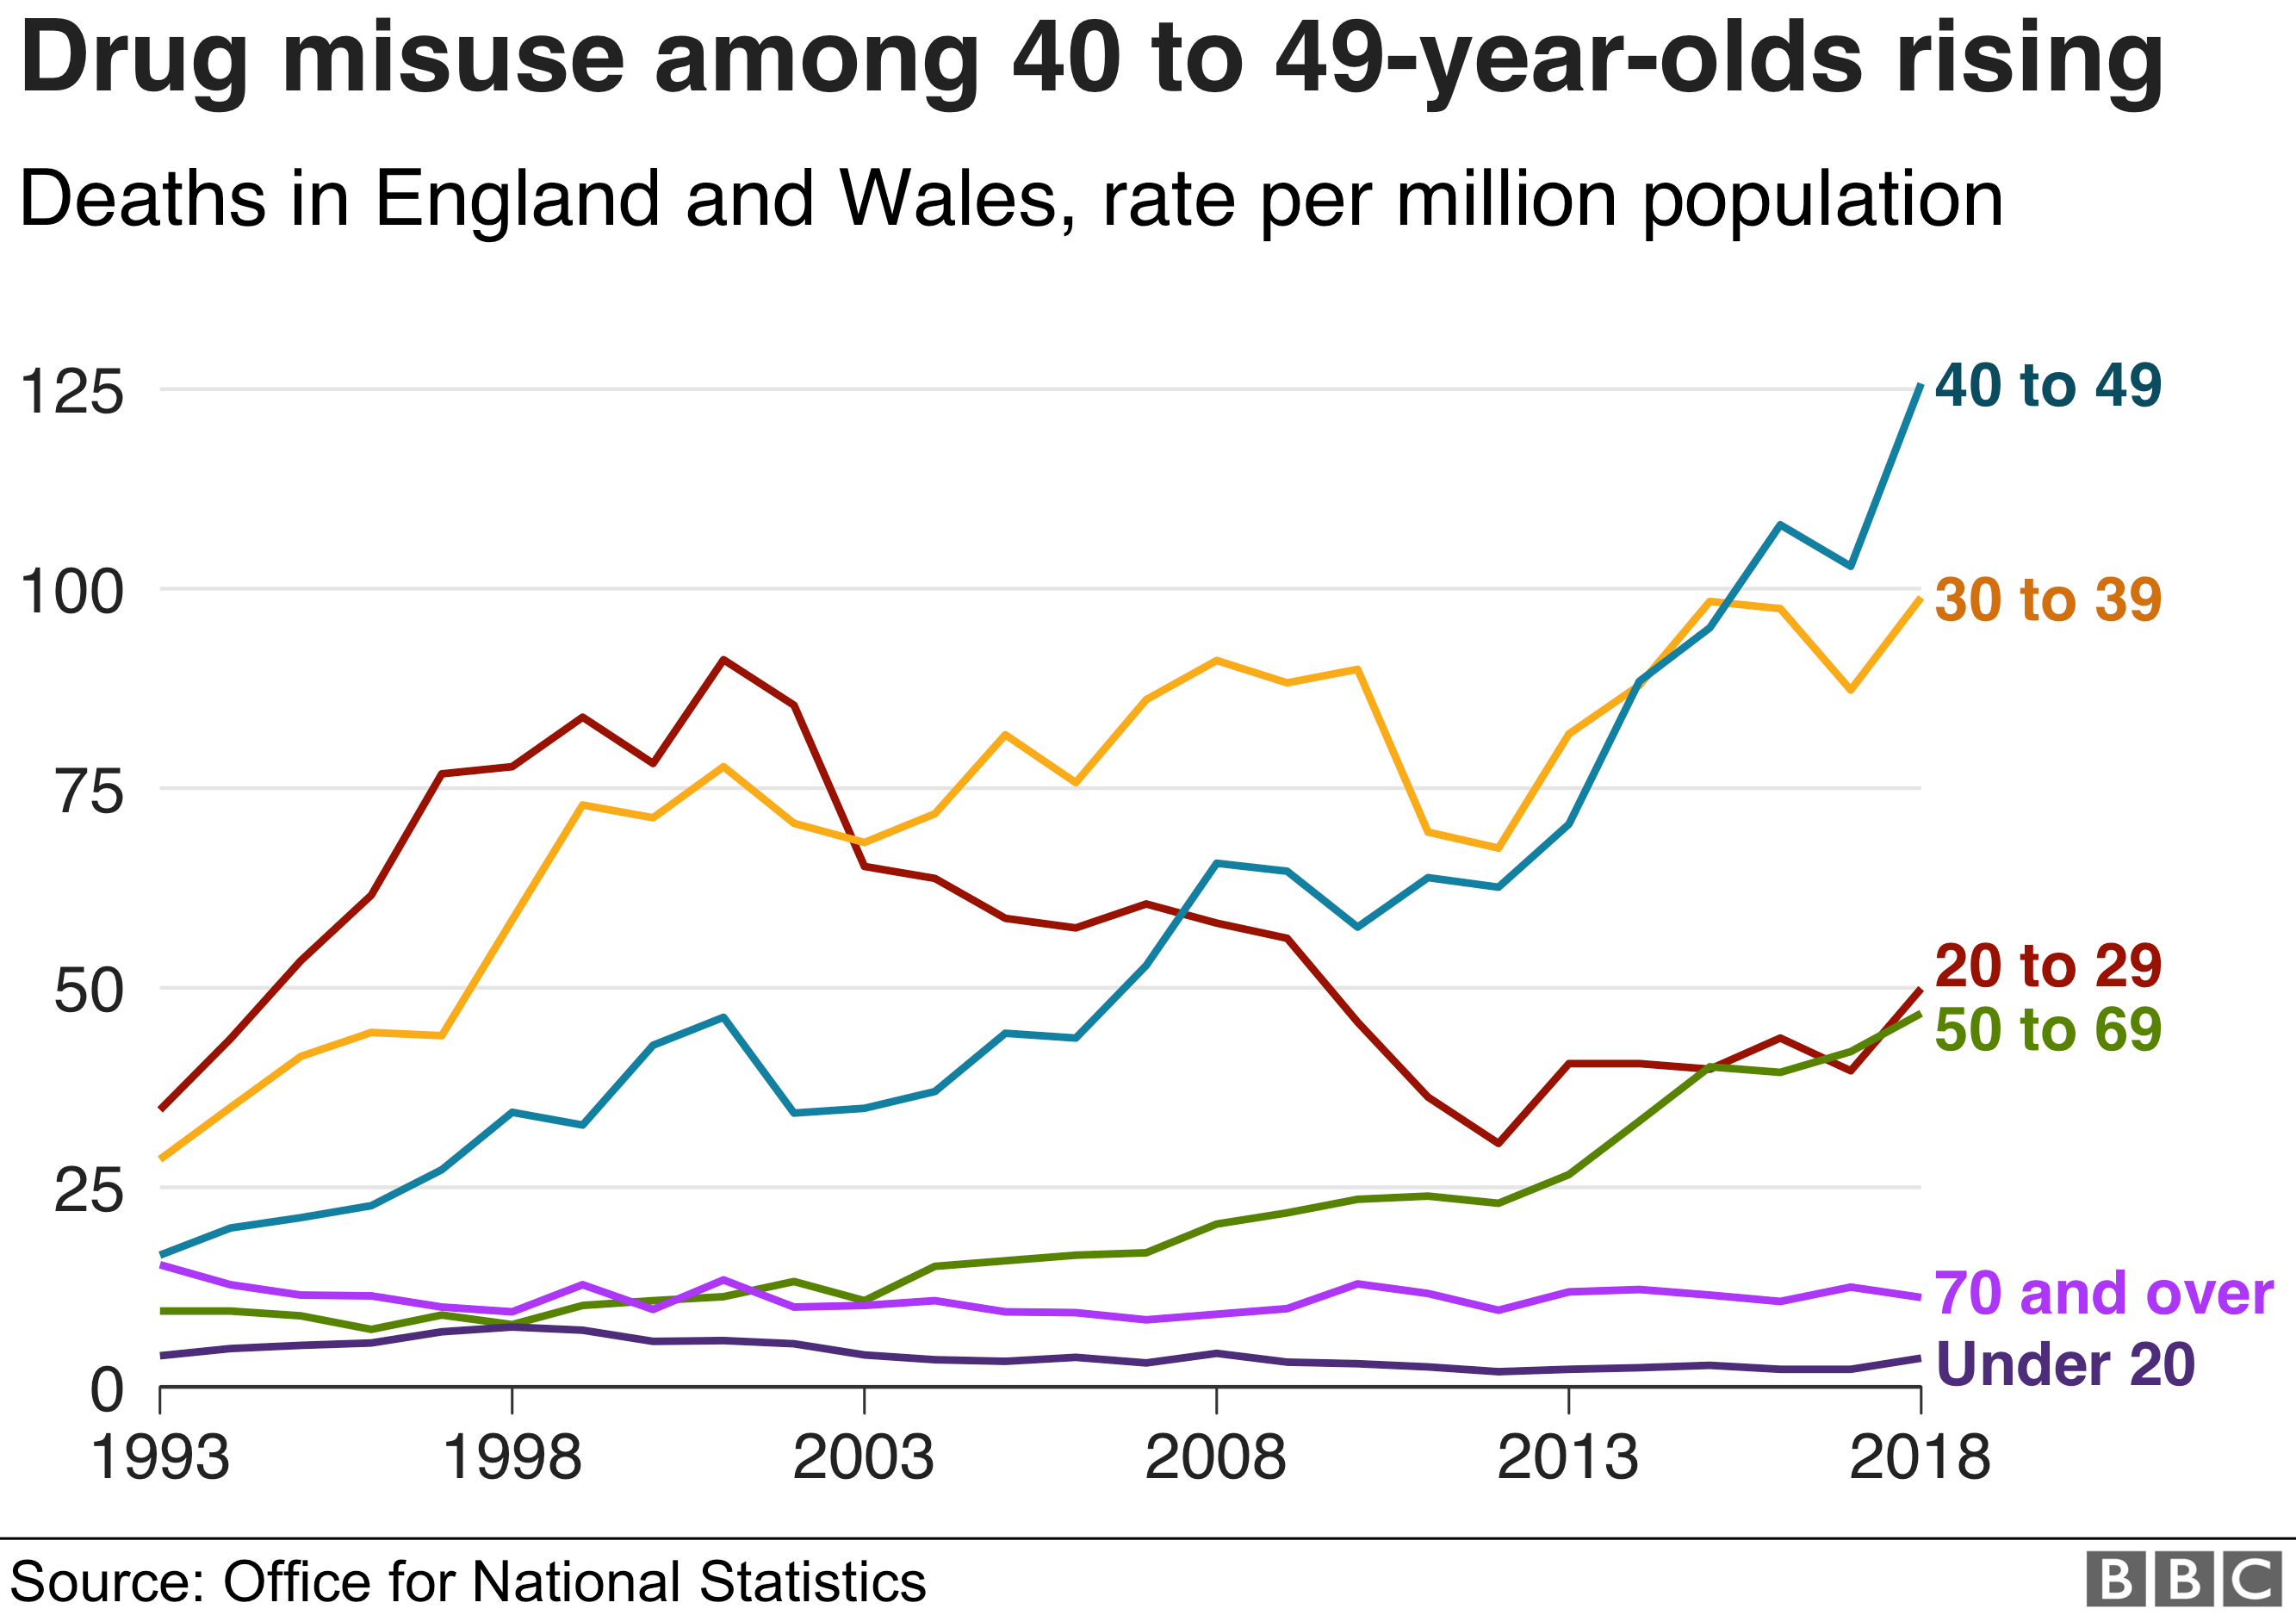 Chart showing mortality rates for drug misuse deaths in England and Wales by age group